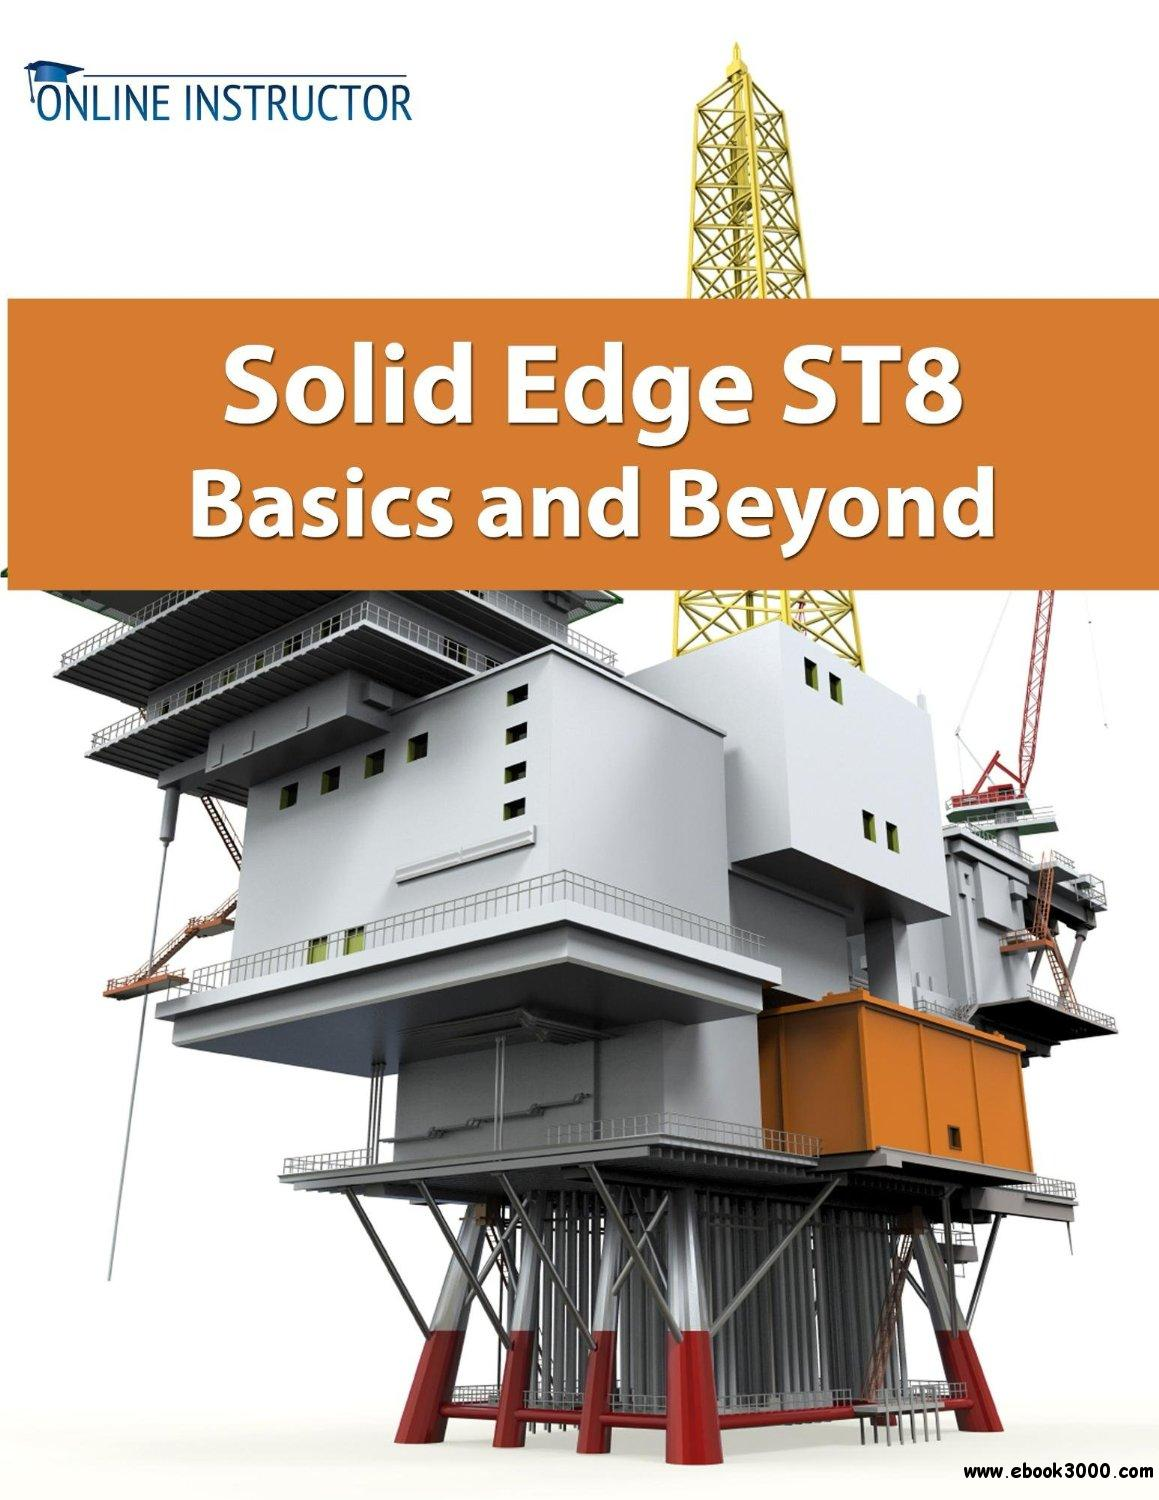 Solid Edge St8 Basics And Beyond Free Ebooks Download